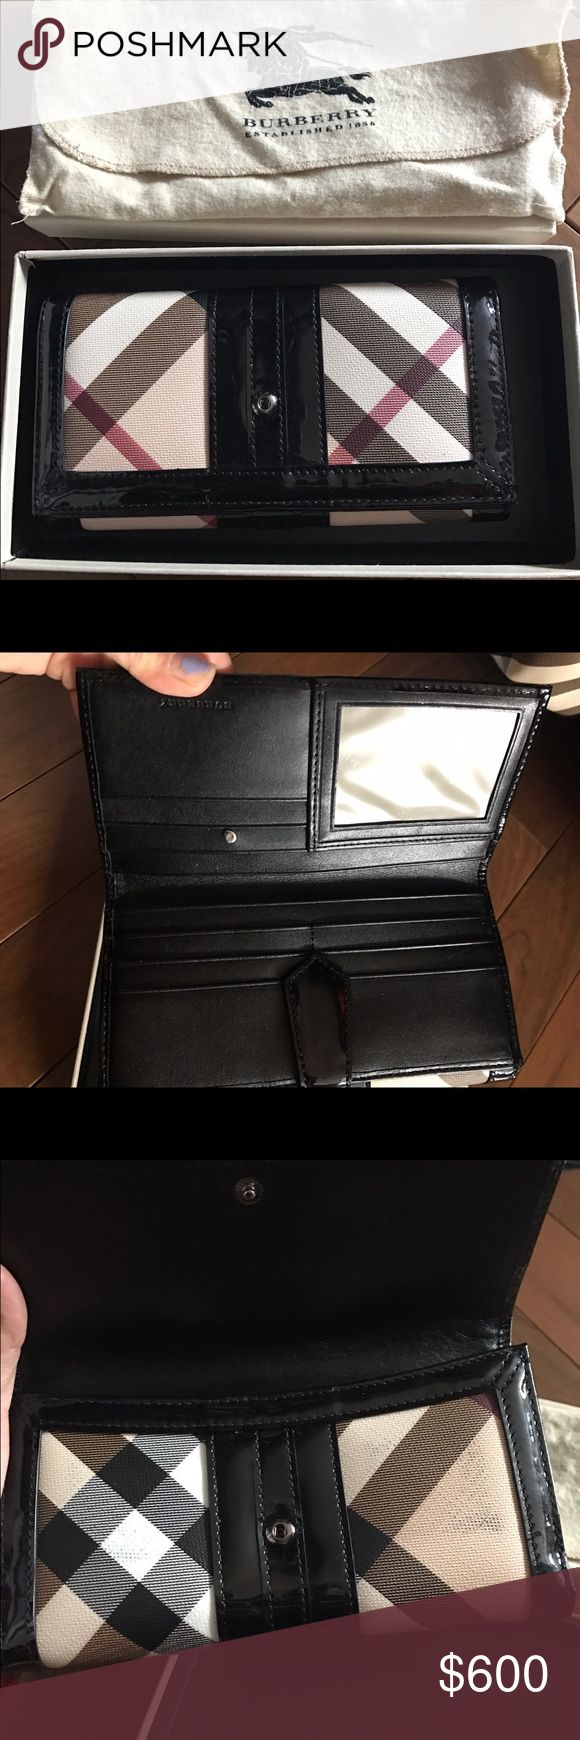 Authentic Burberry wallet and bag. Wallet is in very good condition bag is good condition. I paid $600 for the wallet and the bag was store display got it for $900. Would love to sell as package deal for $600. I got more pictures if needed Burberry Bags Wallets